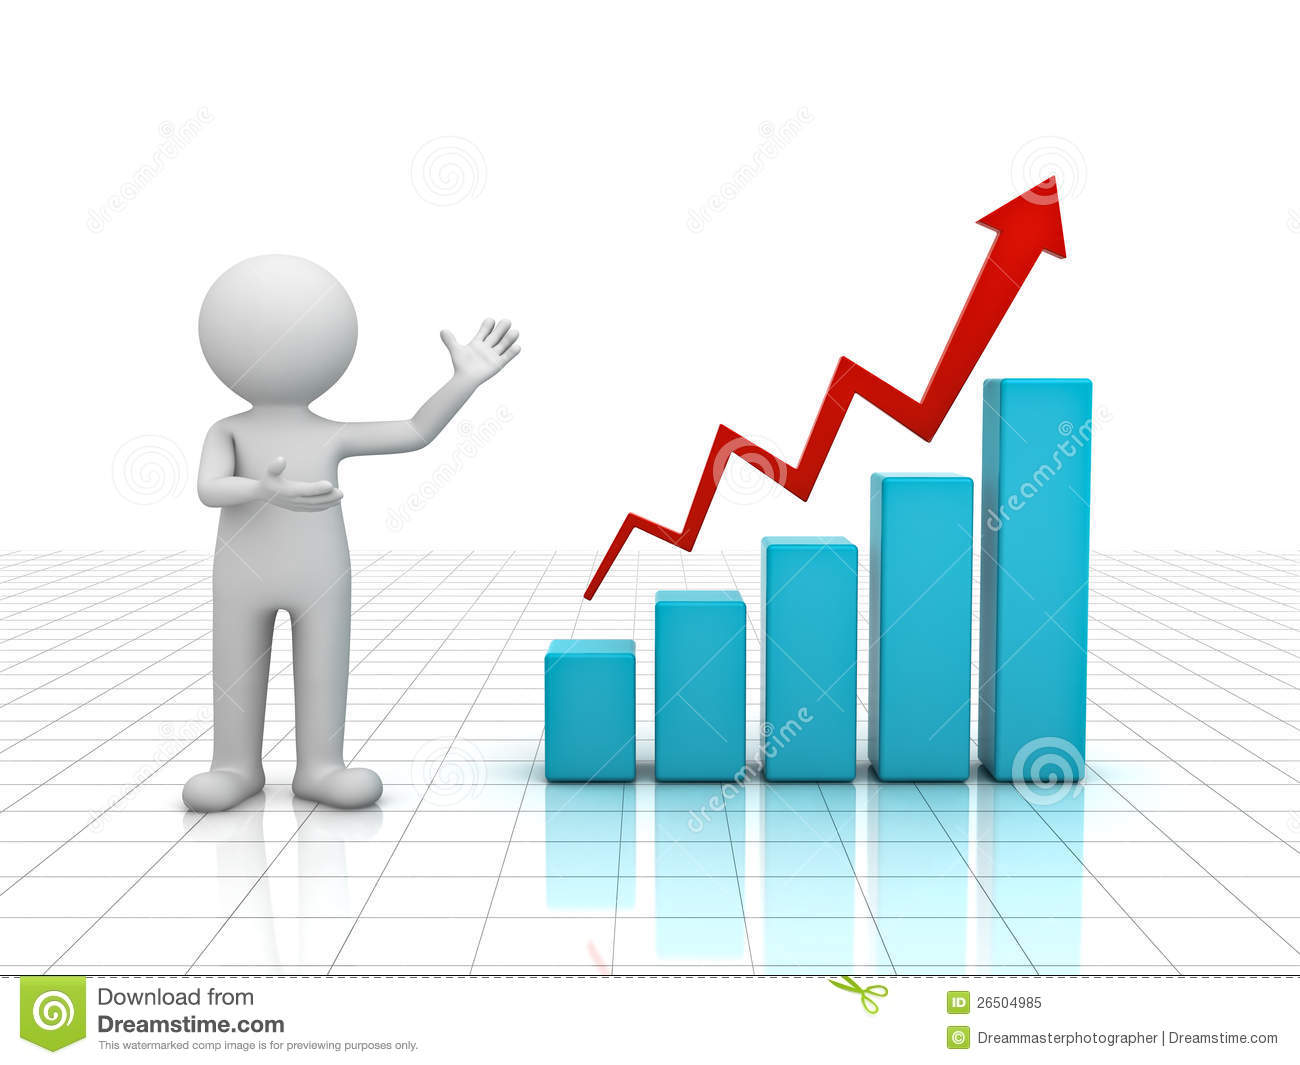 3d-man-presenting-business-growth-chart-graph-26504985.jpg